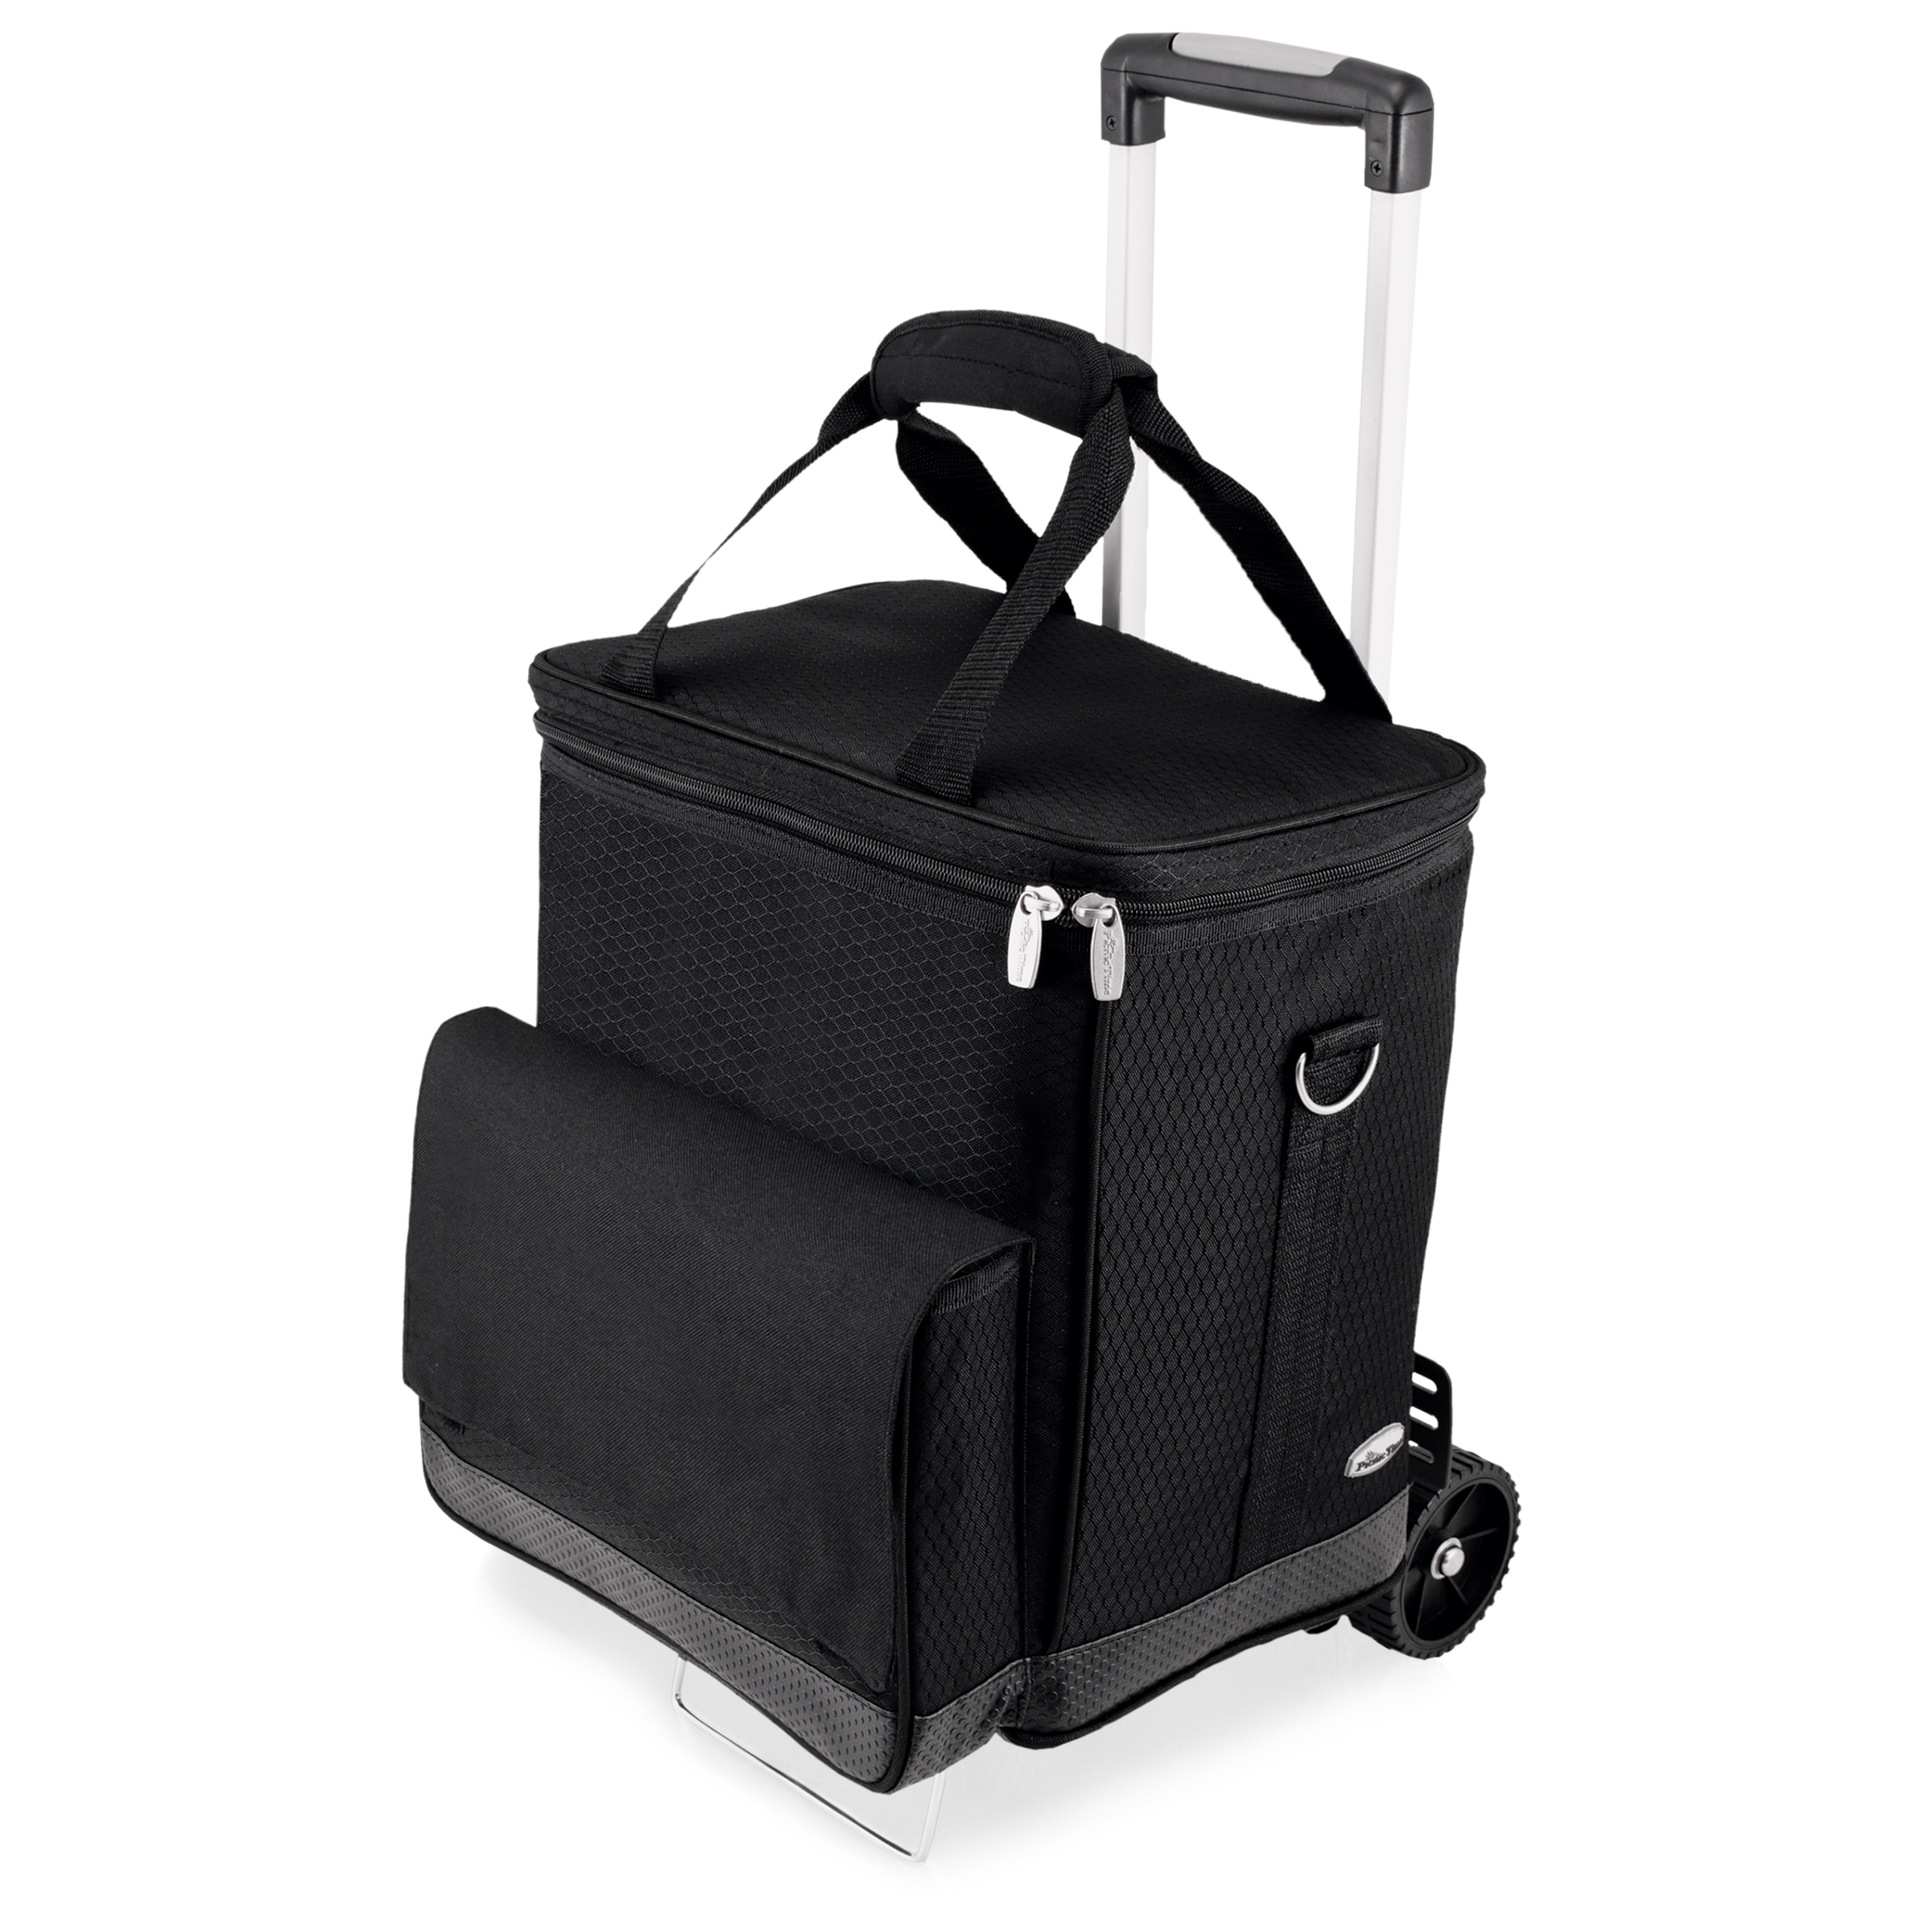 Cellar w/ Trolley Rolling Wine Luggage Carrier, ThermoGuard Insulation